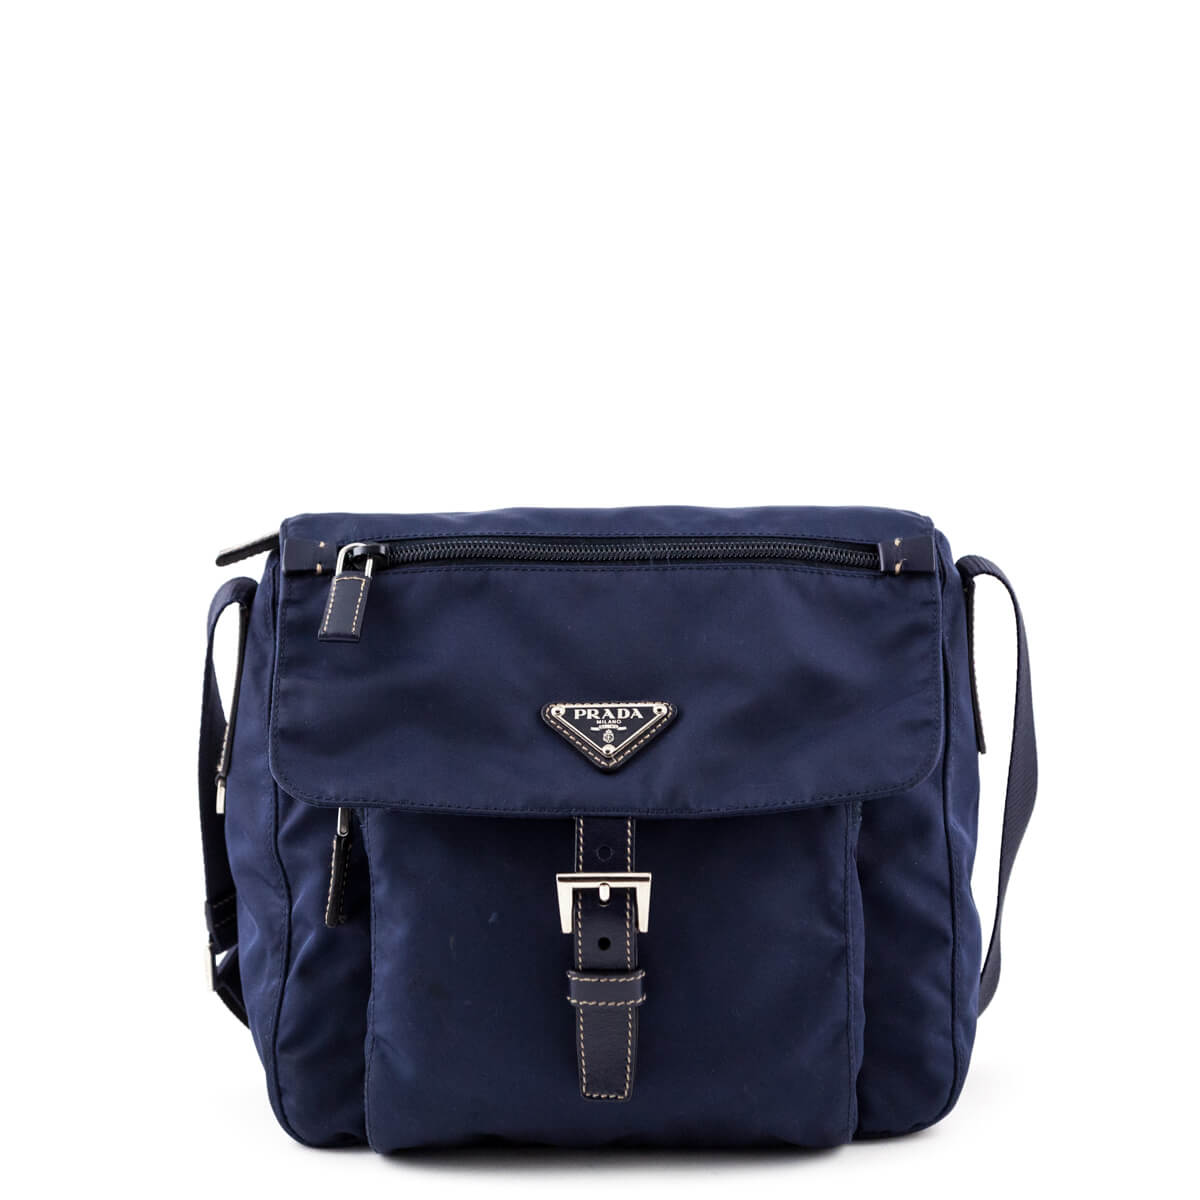 68dcde6cc3ea Prada Navy Nylon Small Crossbody Bag - LOVE that BAG - Preowned Authentic  Designer Handbags ...